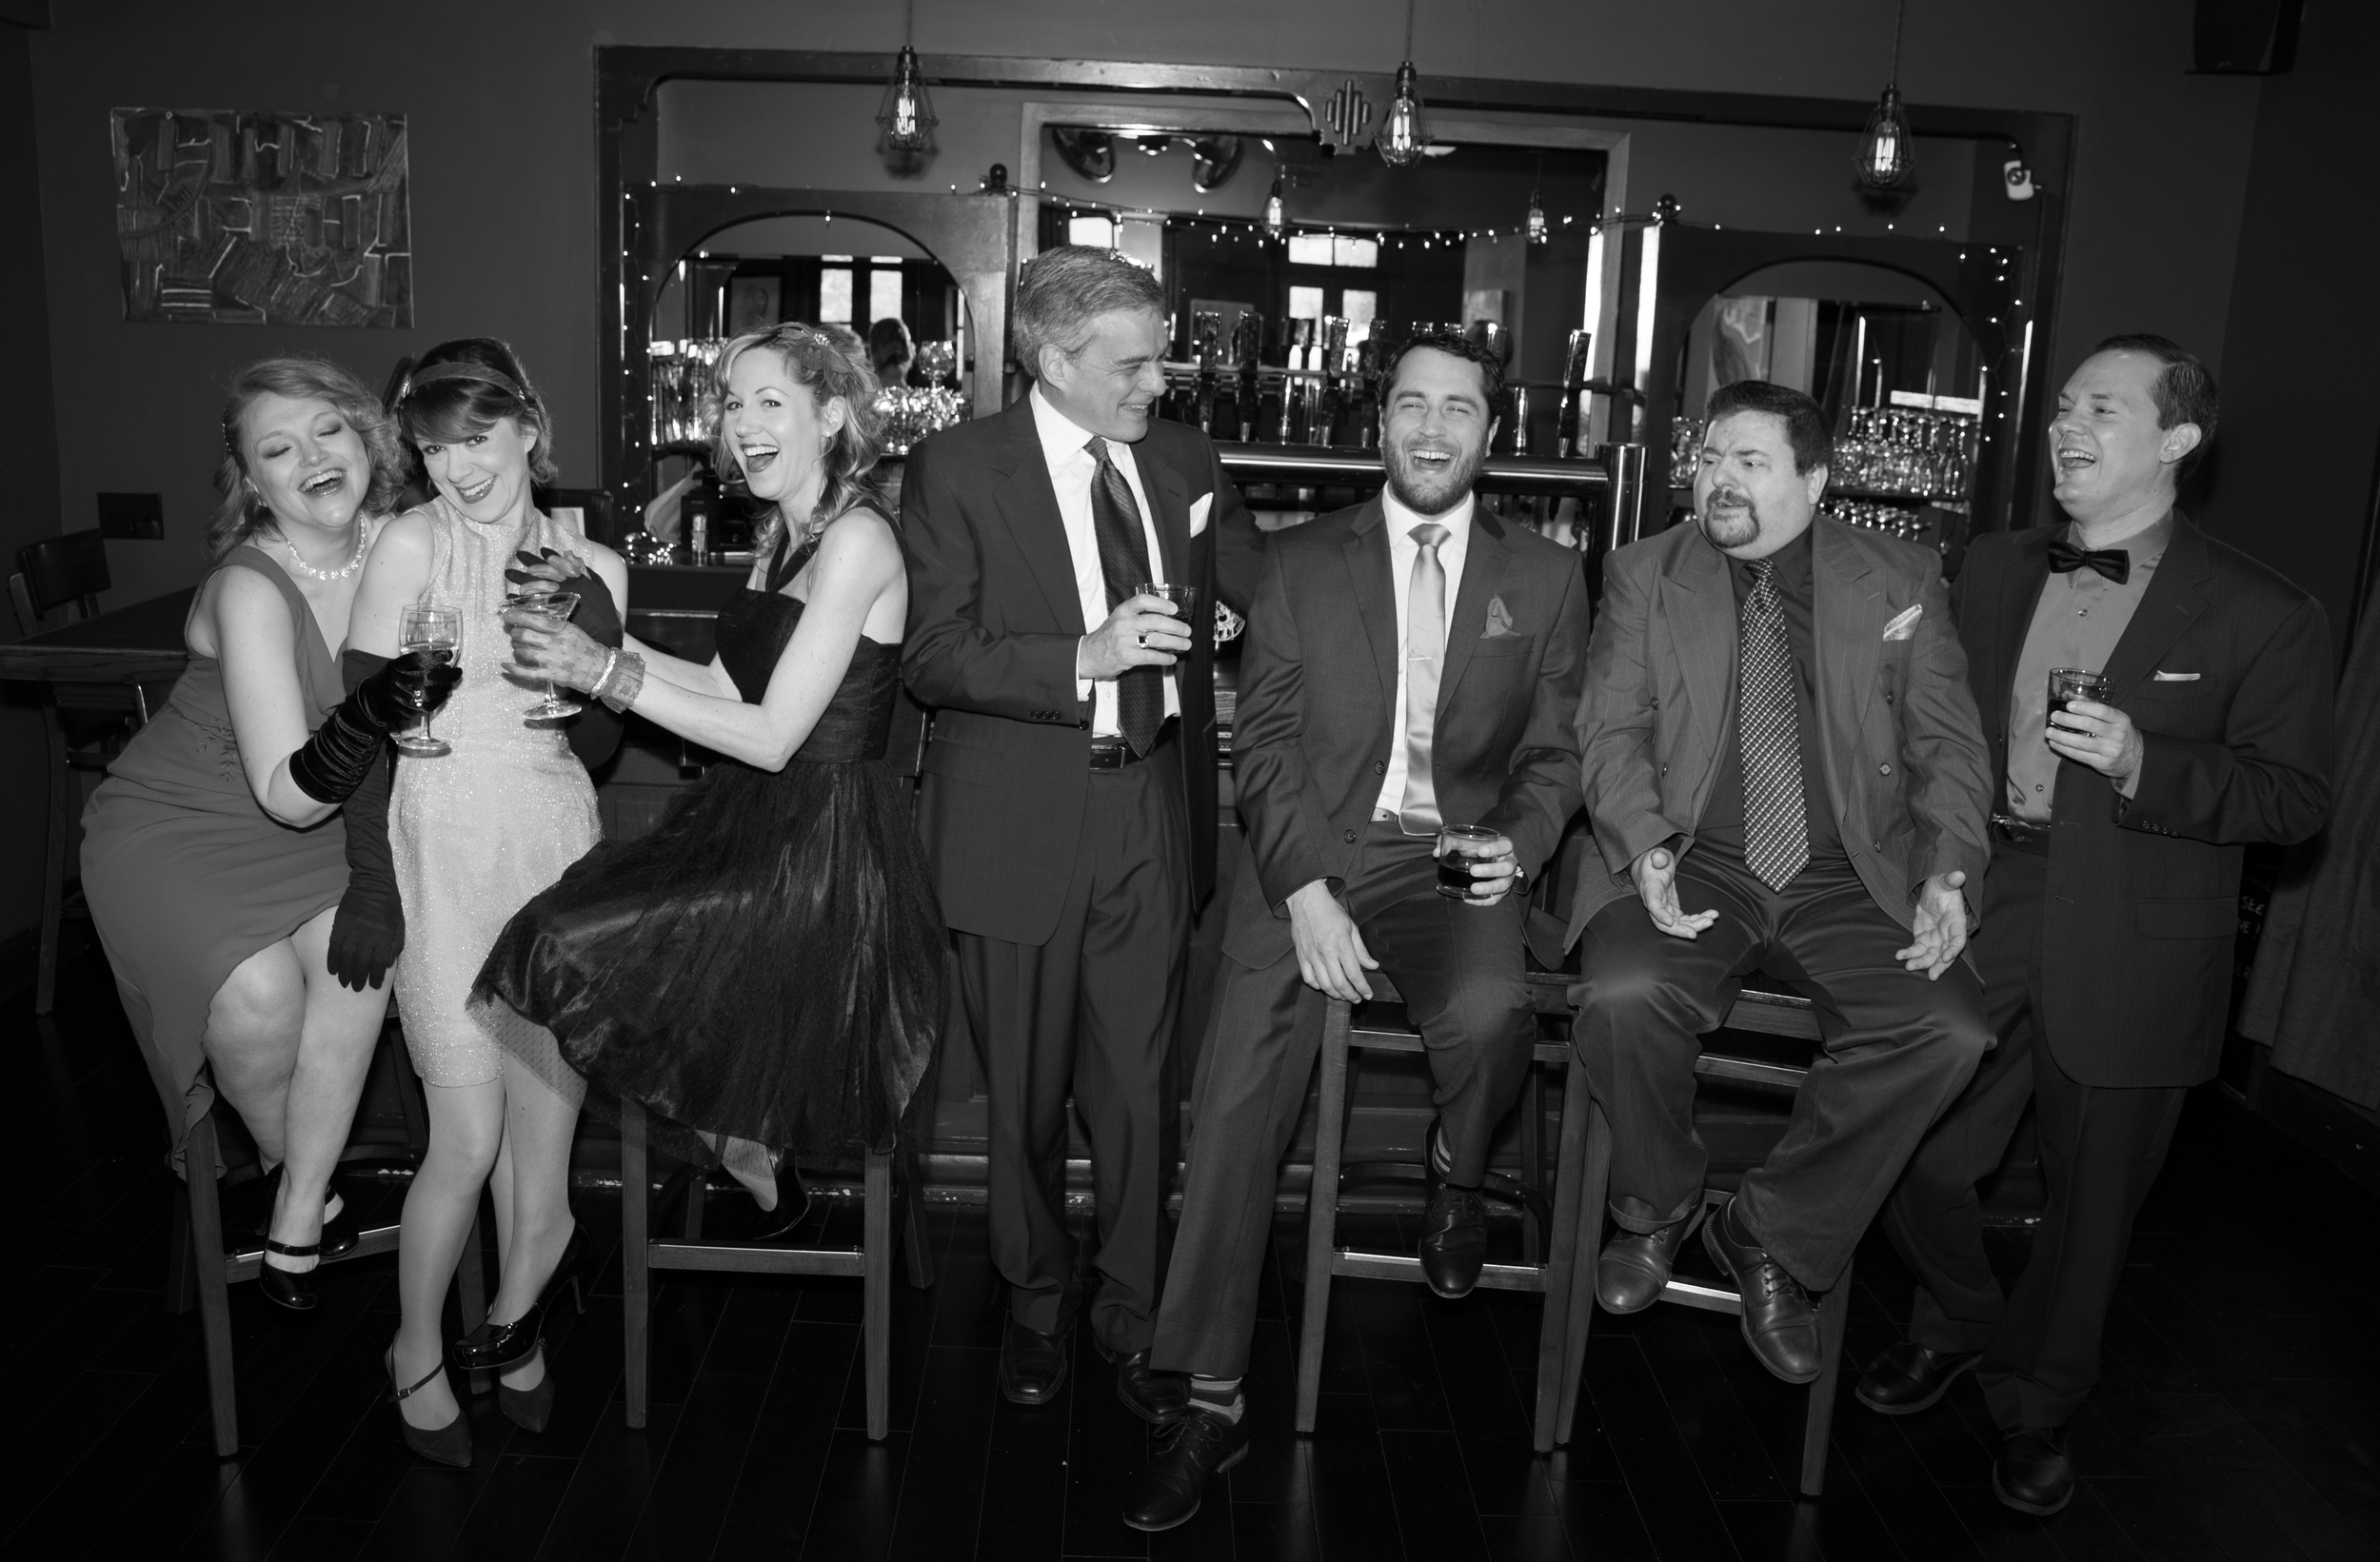 """Easton Theater Co-Op will perform """"Broadway Cabaret"""" show Aug. 27 at The Pomfret Club in Easton.  (Courtesy Photo)"""